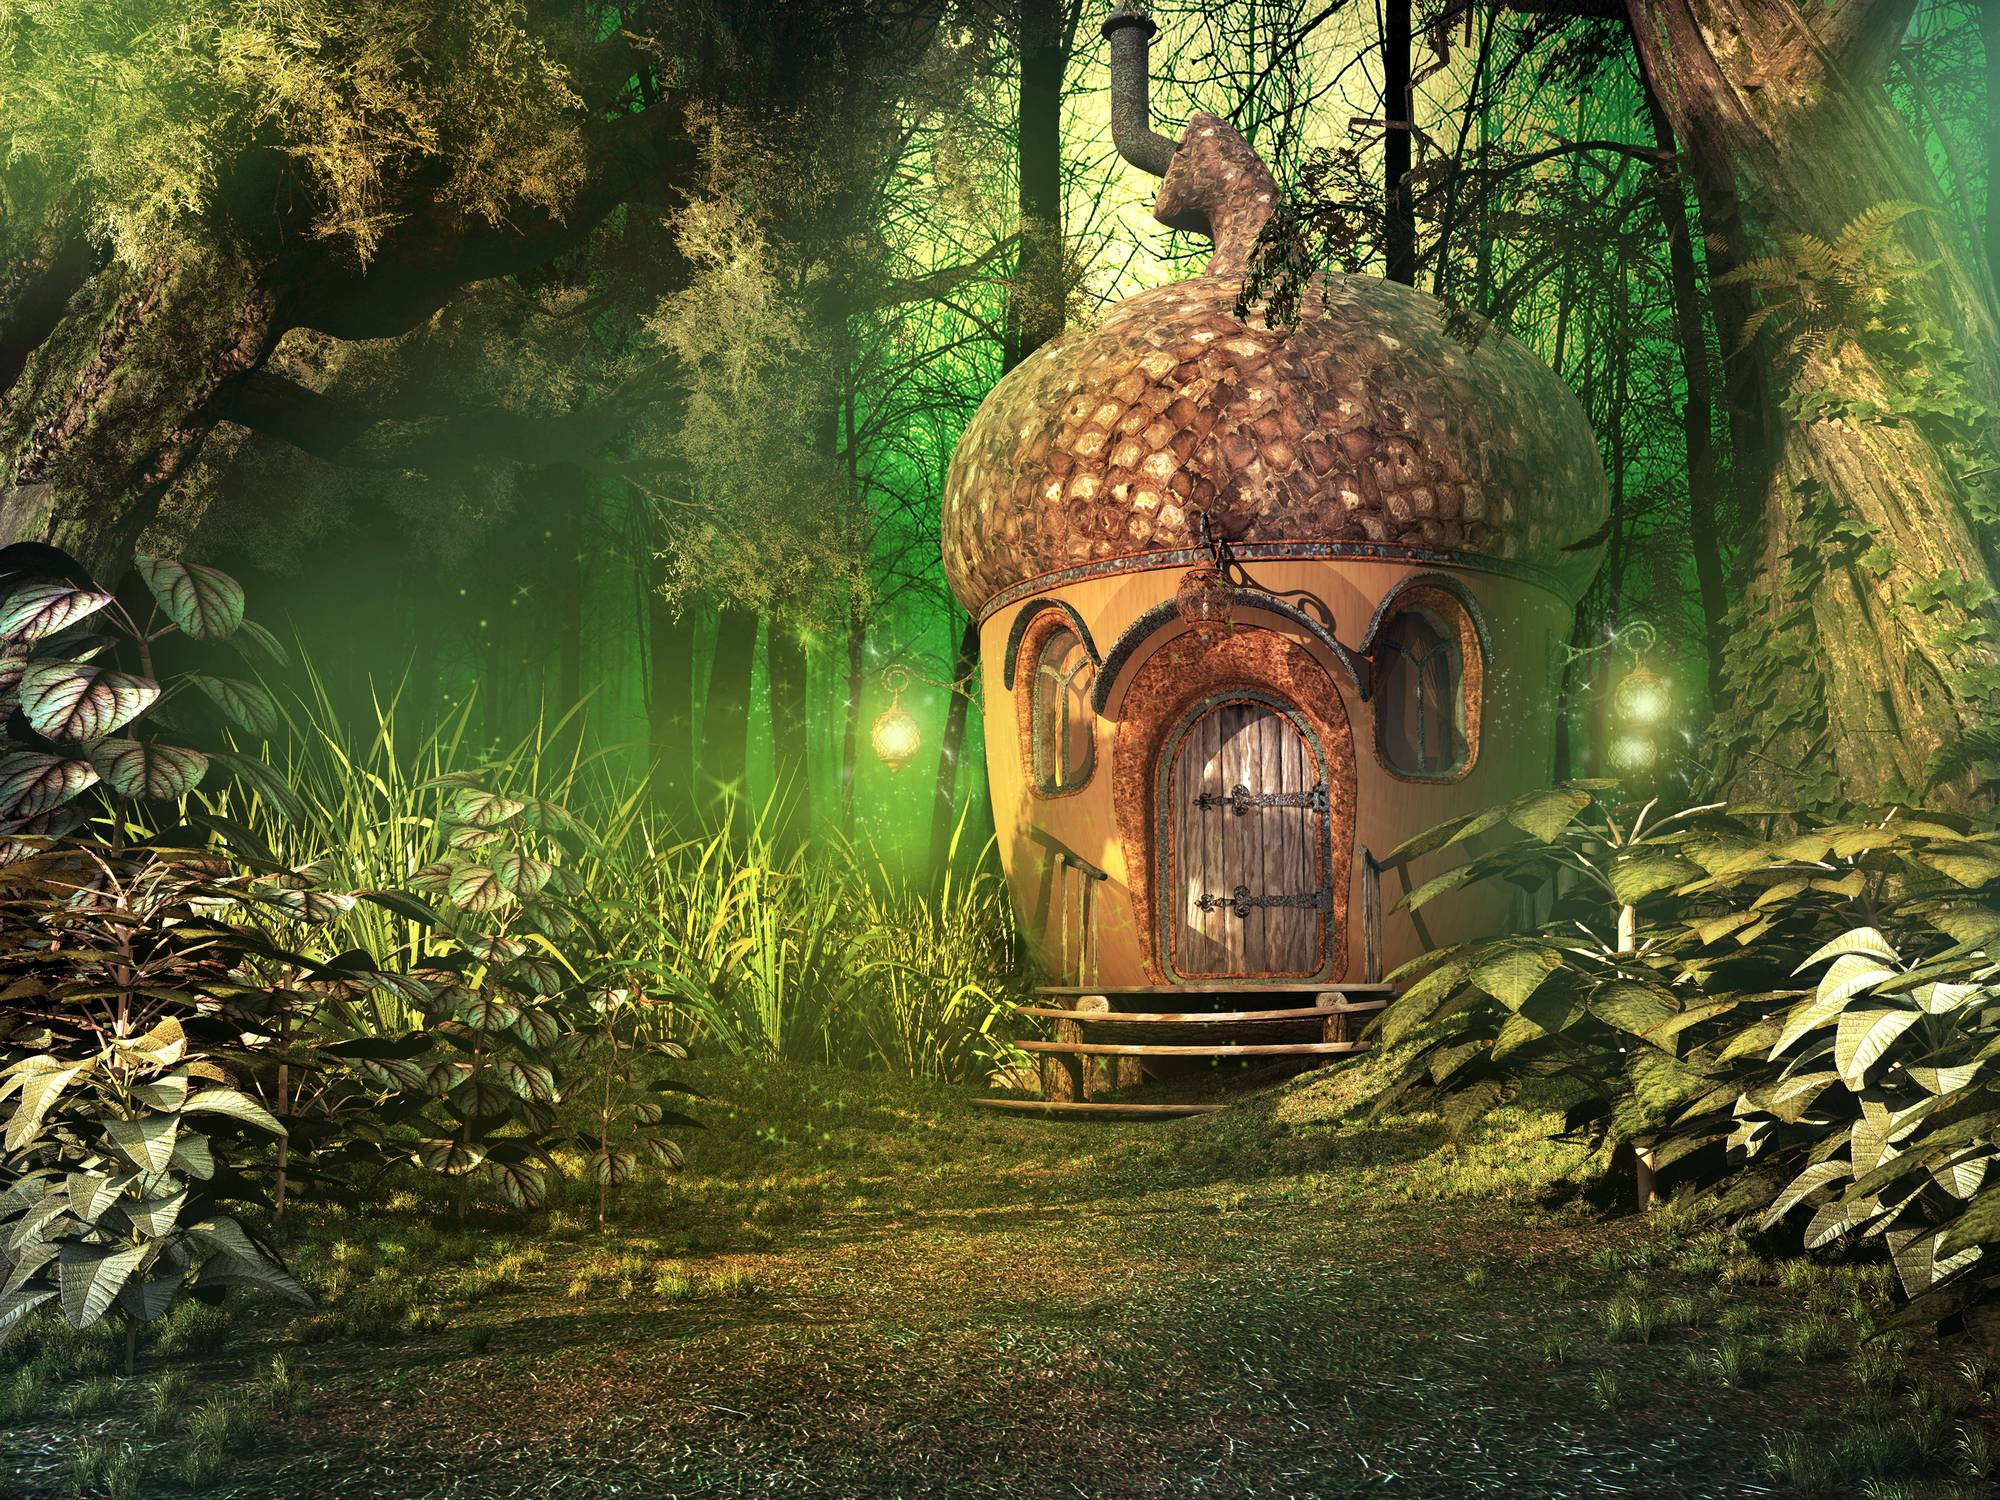 Fairy Houses | Anythink Libraries